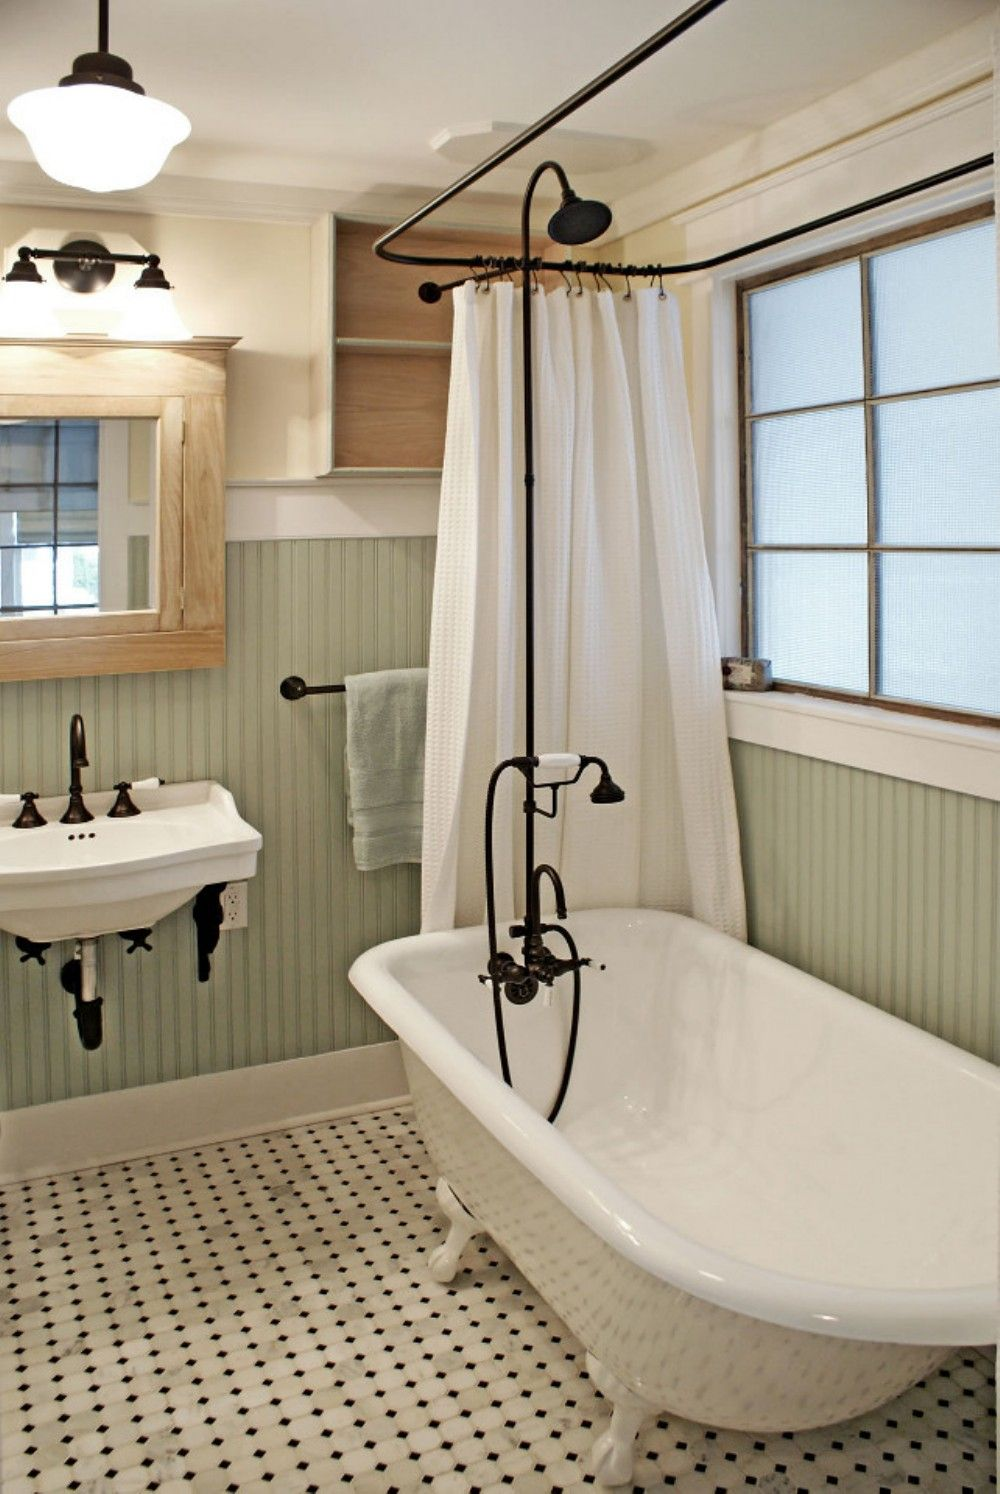 23 Amazing Ideas About Vintage Bathroom | HOMEDECORT